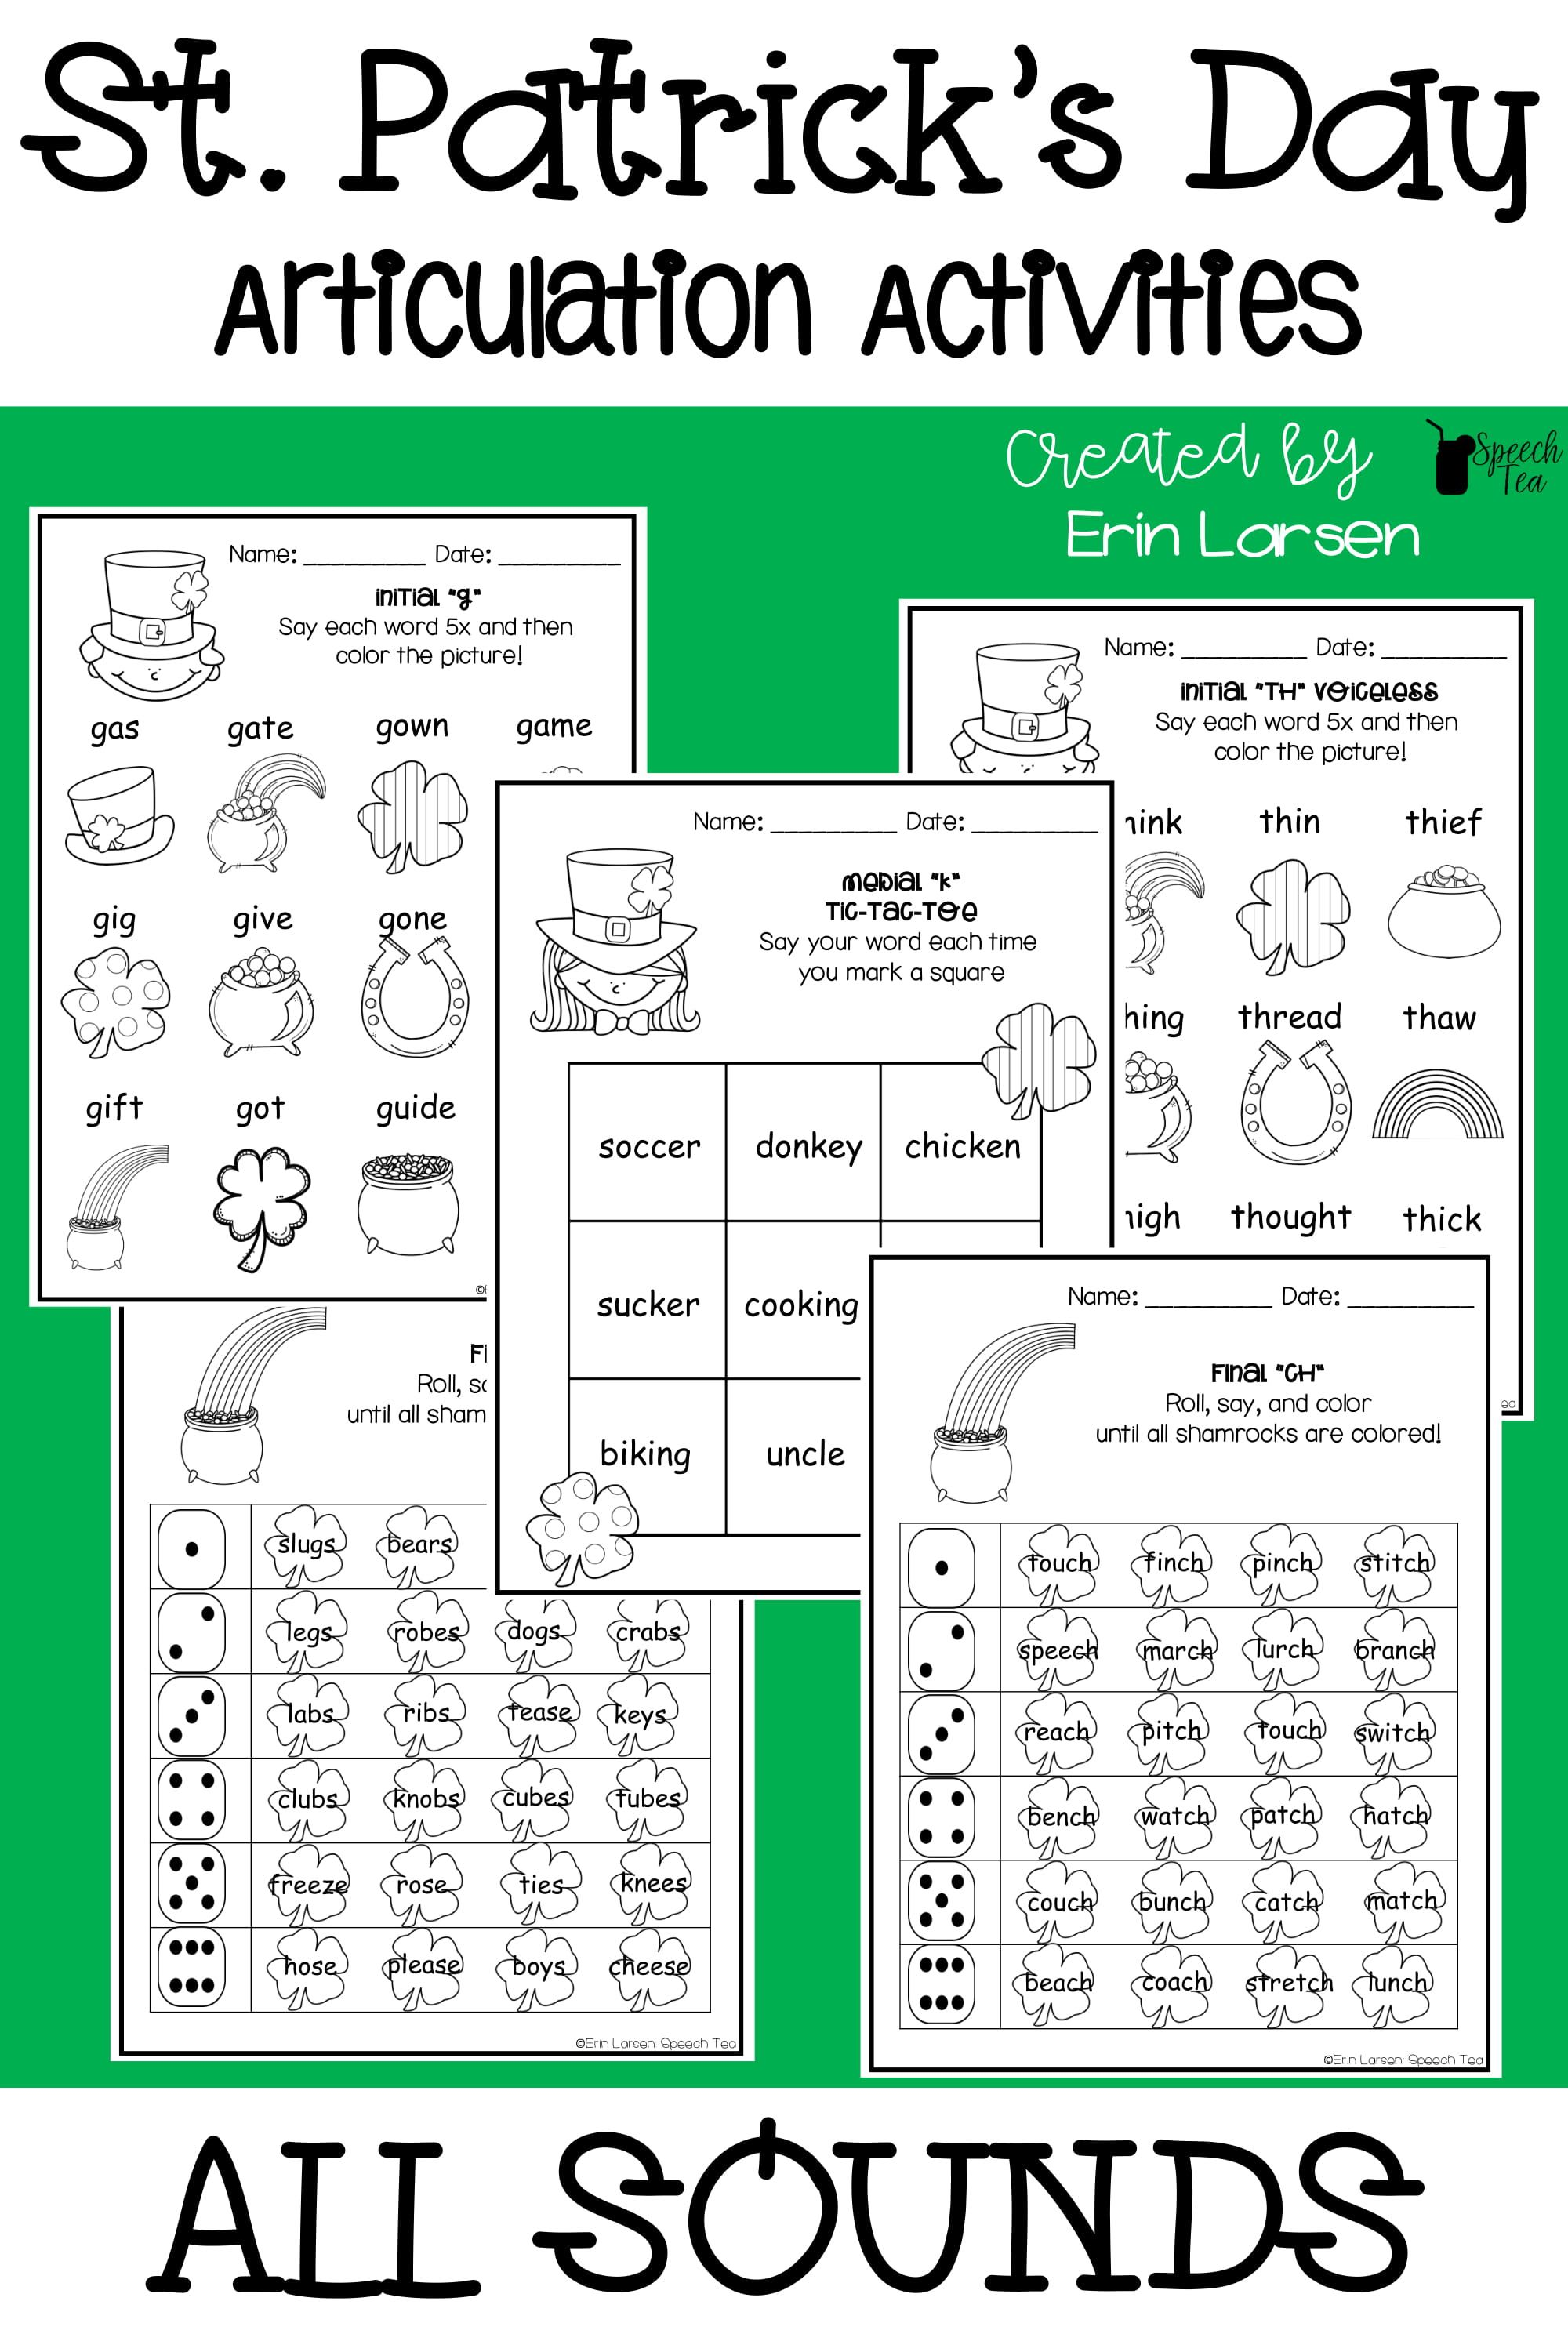 St. Patrick's Day Articulation Activities for ALL SOUNDS. Great to send home for practice. Click for more info.